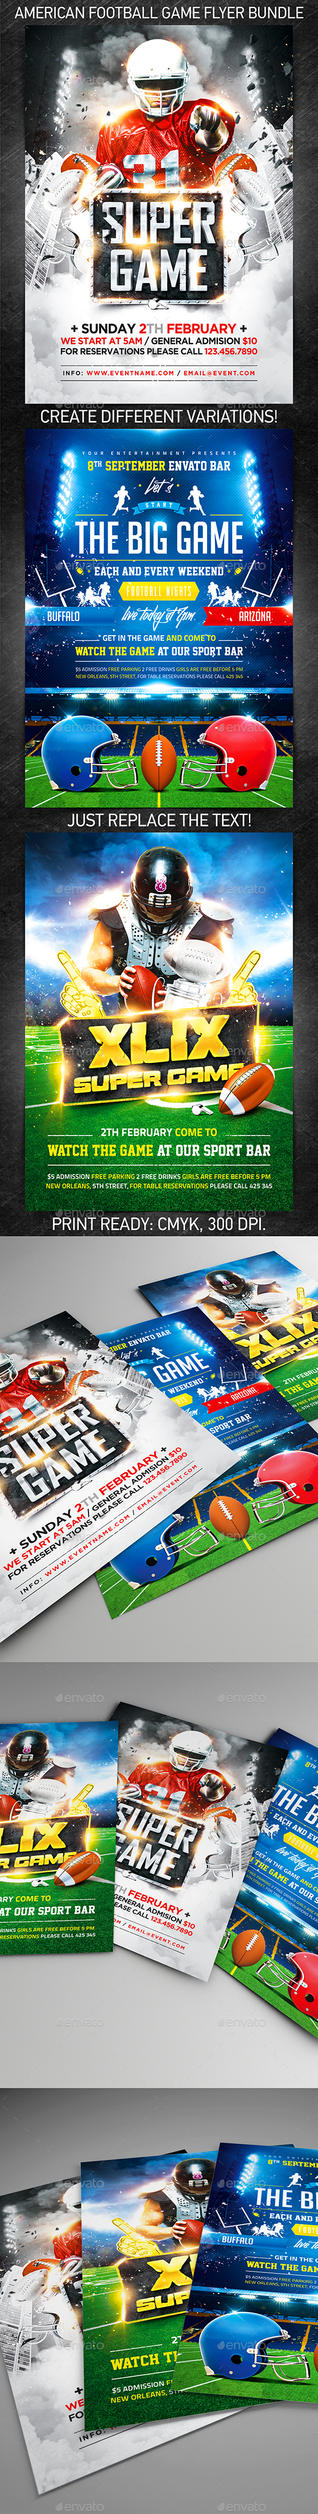 American Football Game Flyer Bundle, PSD Template by 4ustudio